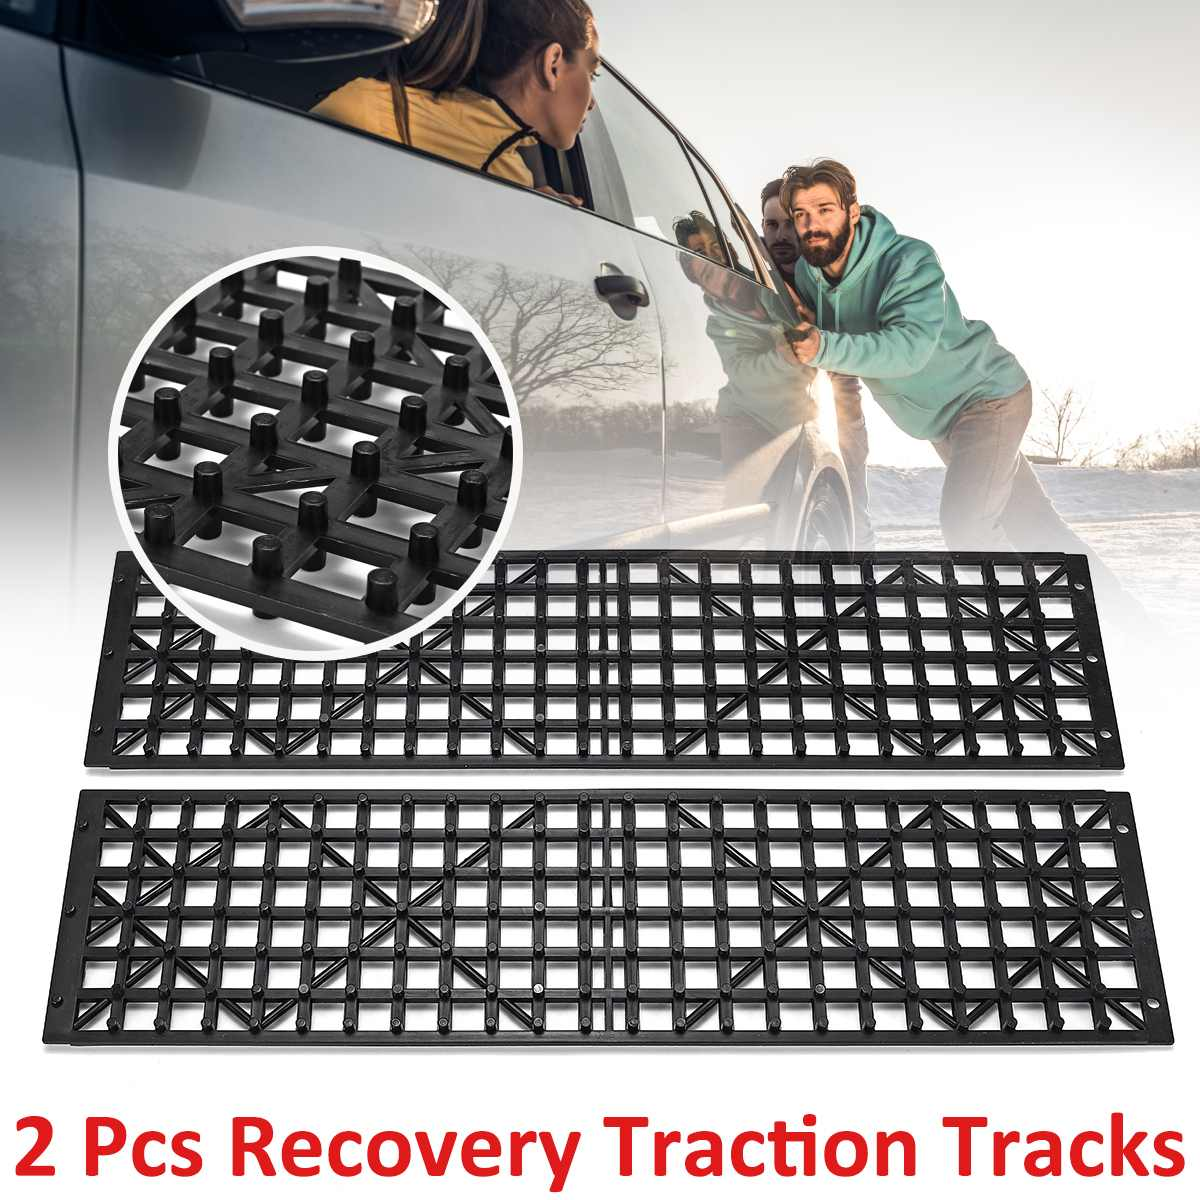 2x Car Recovery Traction Tyre Anti-skid Grip Tracks Truck Winter Snow Chains Tires Mat Wheel Chain Ice Mud Sand Road Tracks(China)